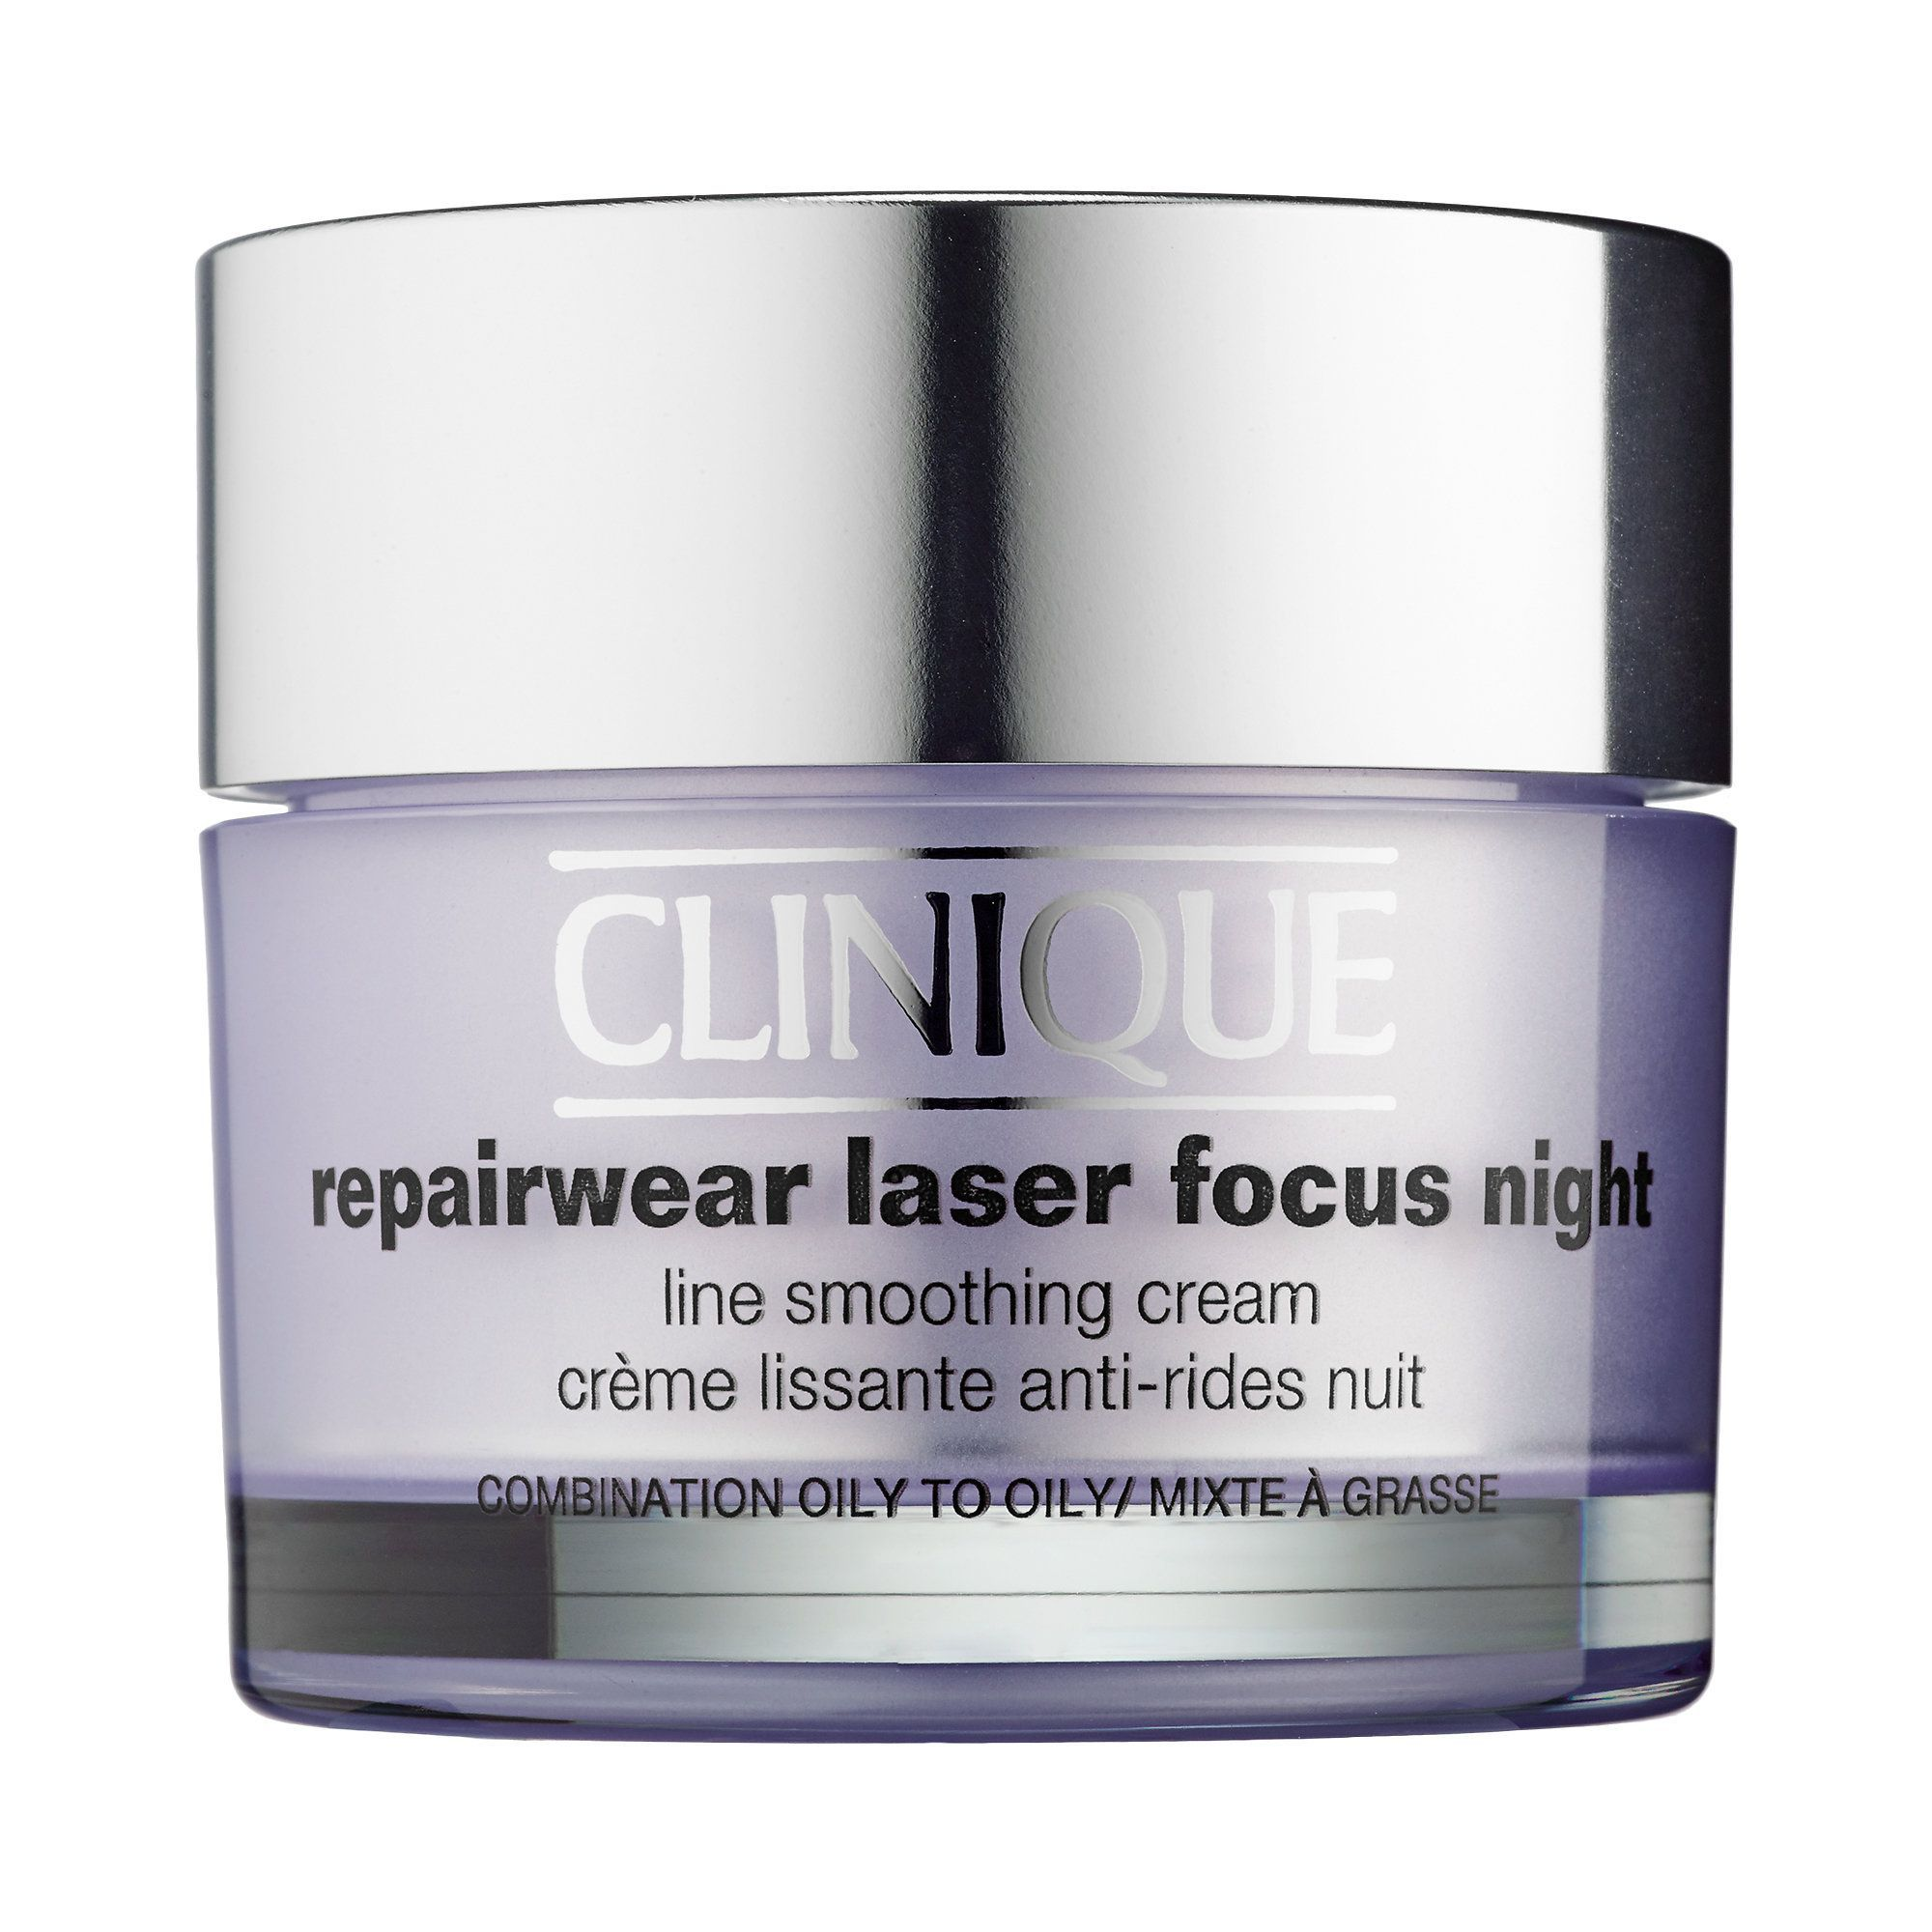 Shop Clinique S Repairwear Laser Focus Night Line Smoothing Cream For Combination Oily To Oily Skin At Sephora Smoothing Cream Clinique Repairwear Face Cream